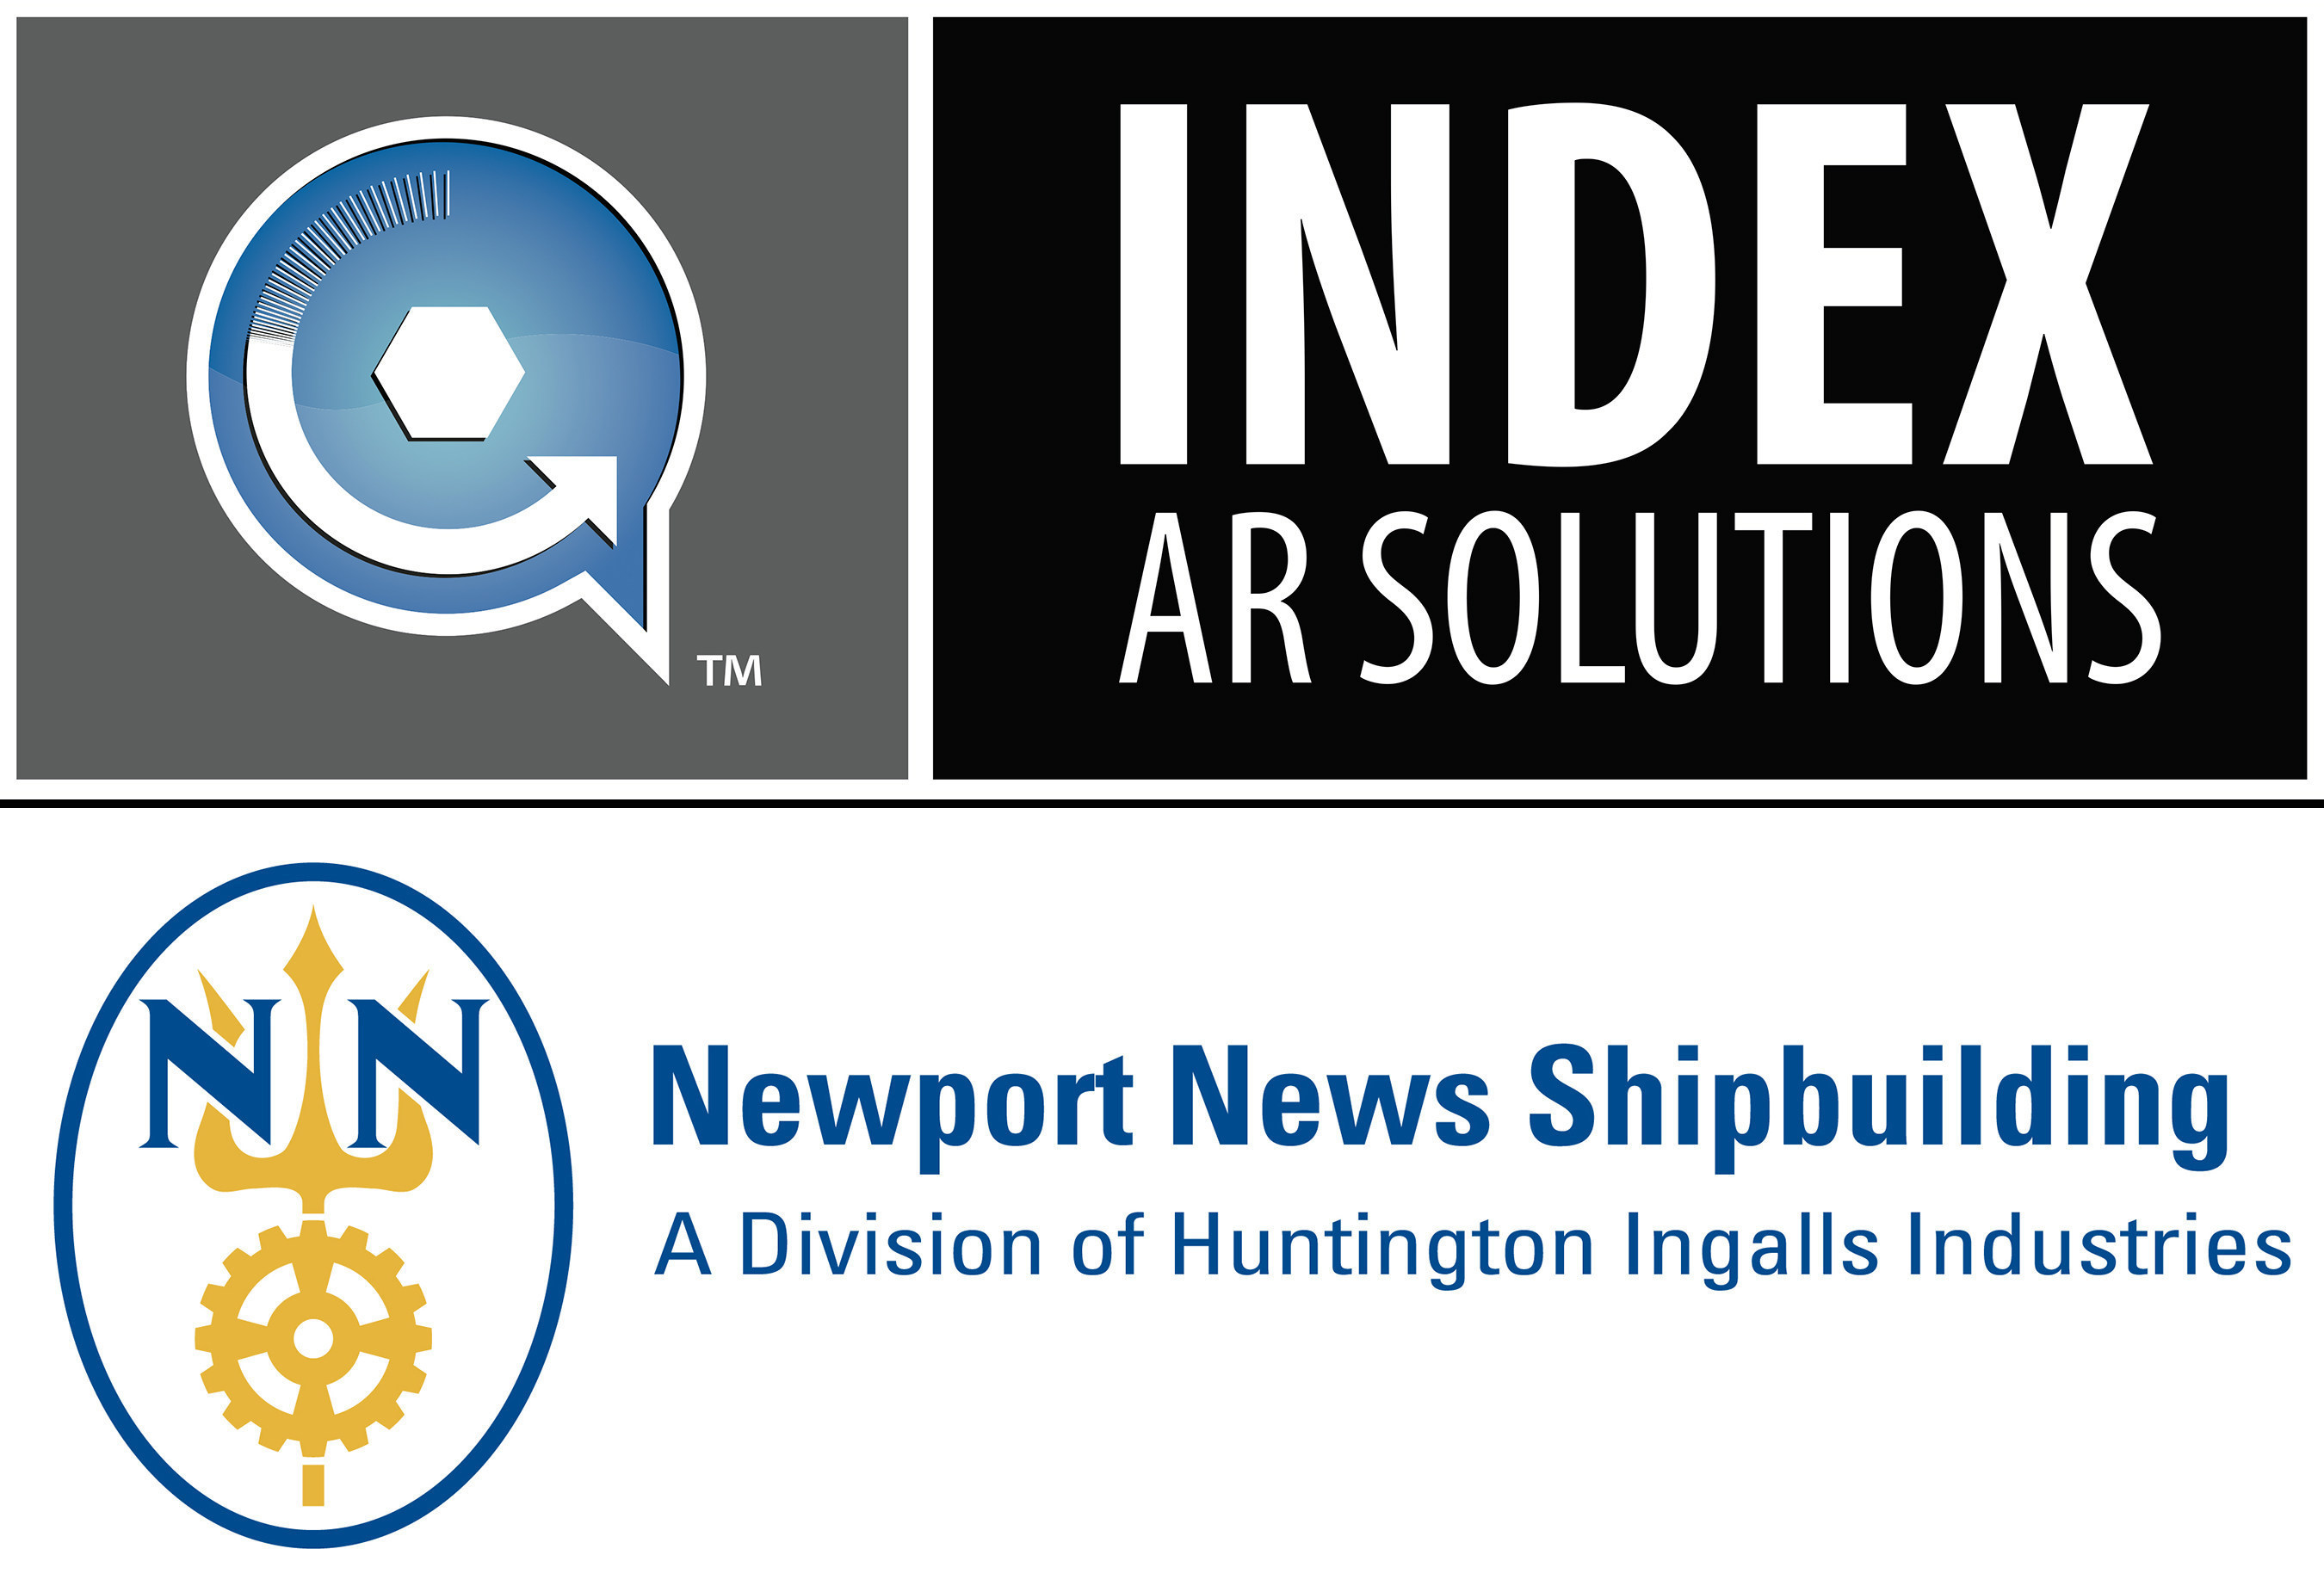 Index Ar Solutions Announces Teaming Agreement With Newport News